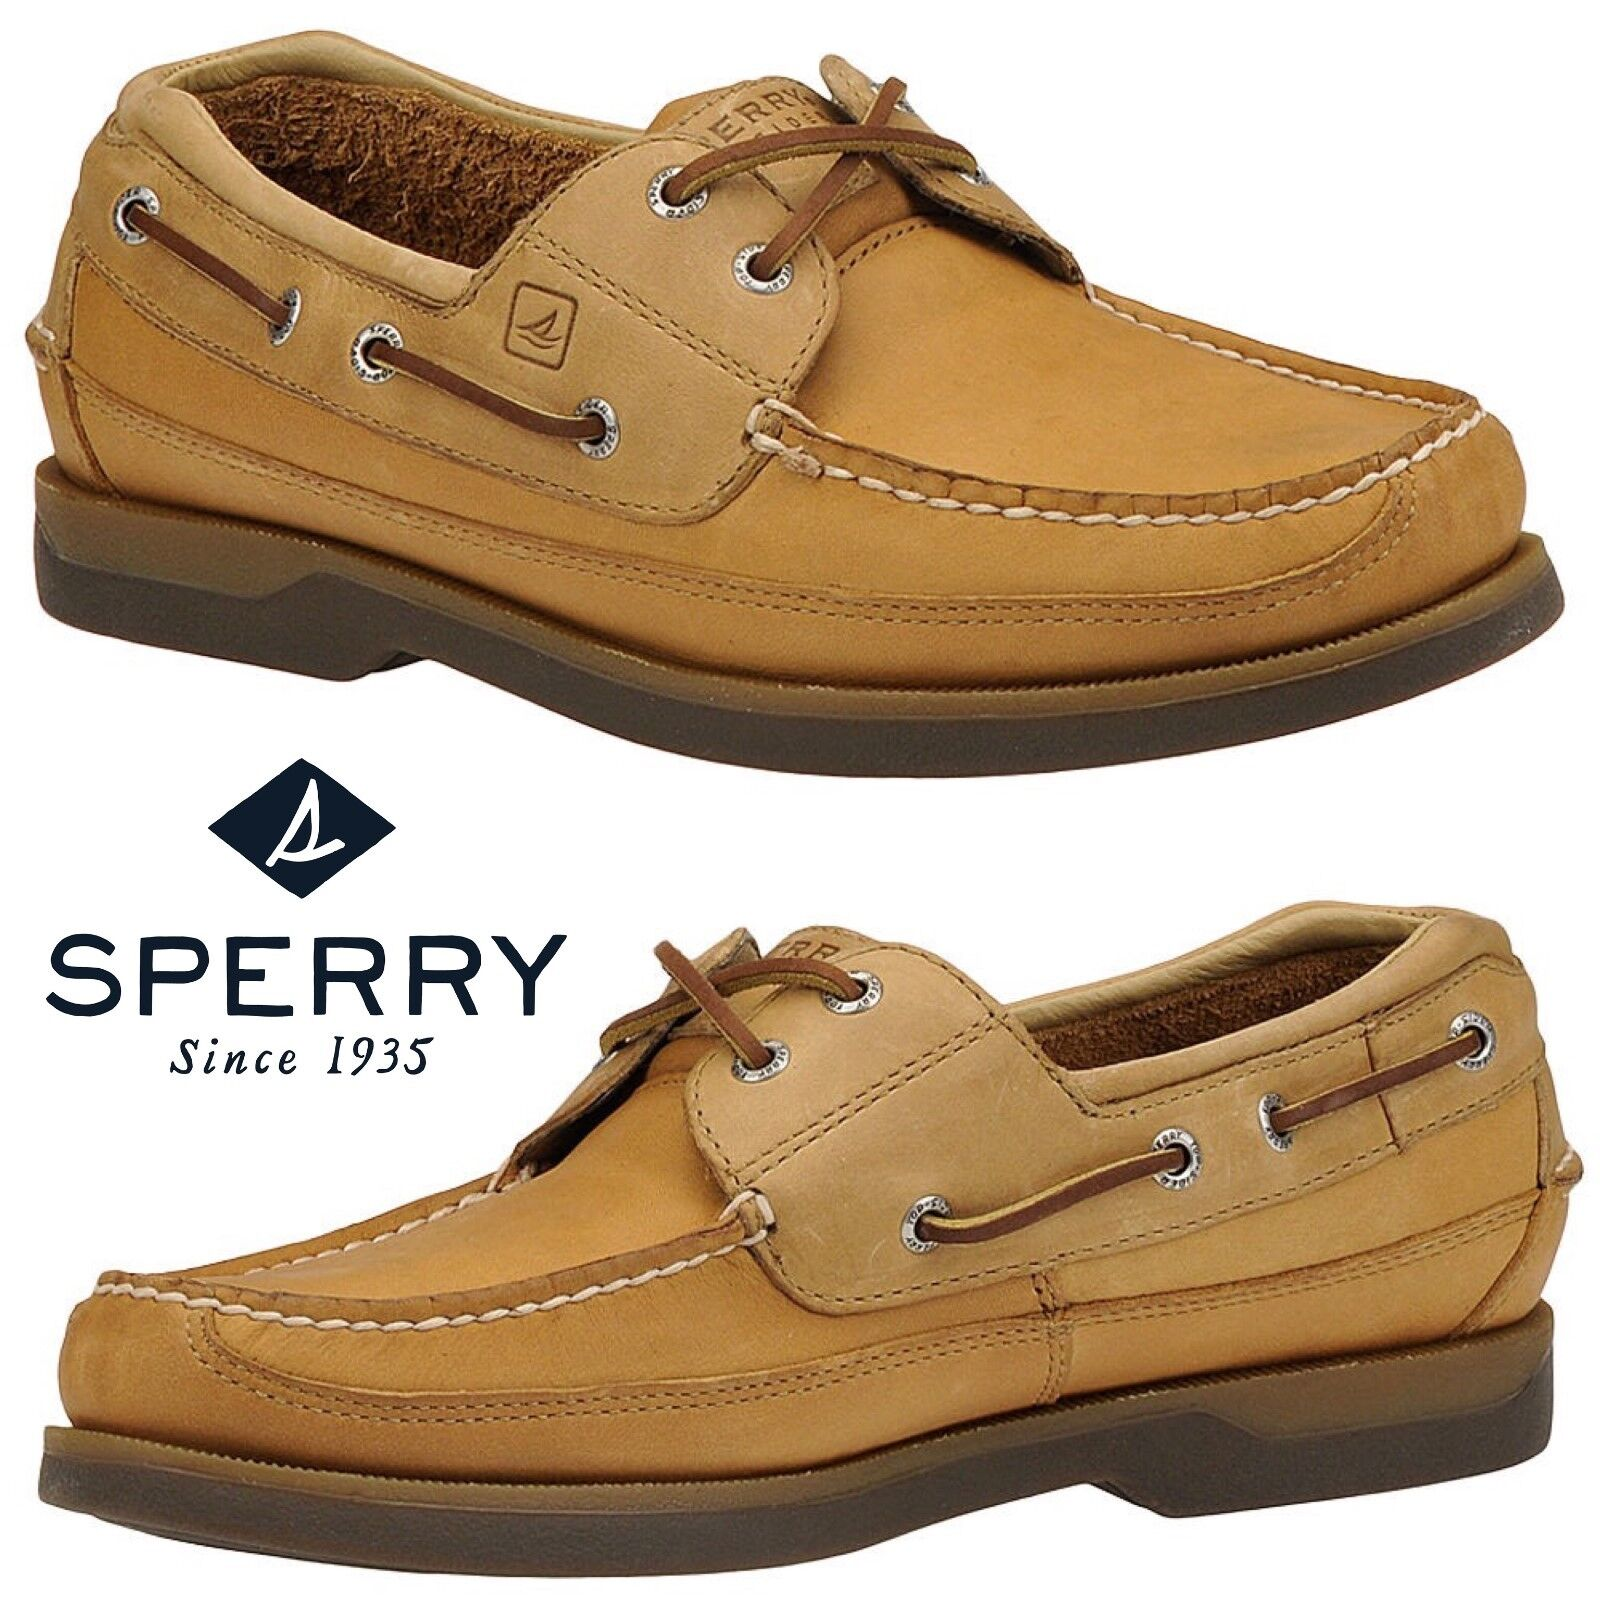 Sperry Top-Sider Mako 2-Eye Canoe Moc zapatos Work Comfort Leather Walking NWB